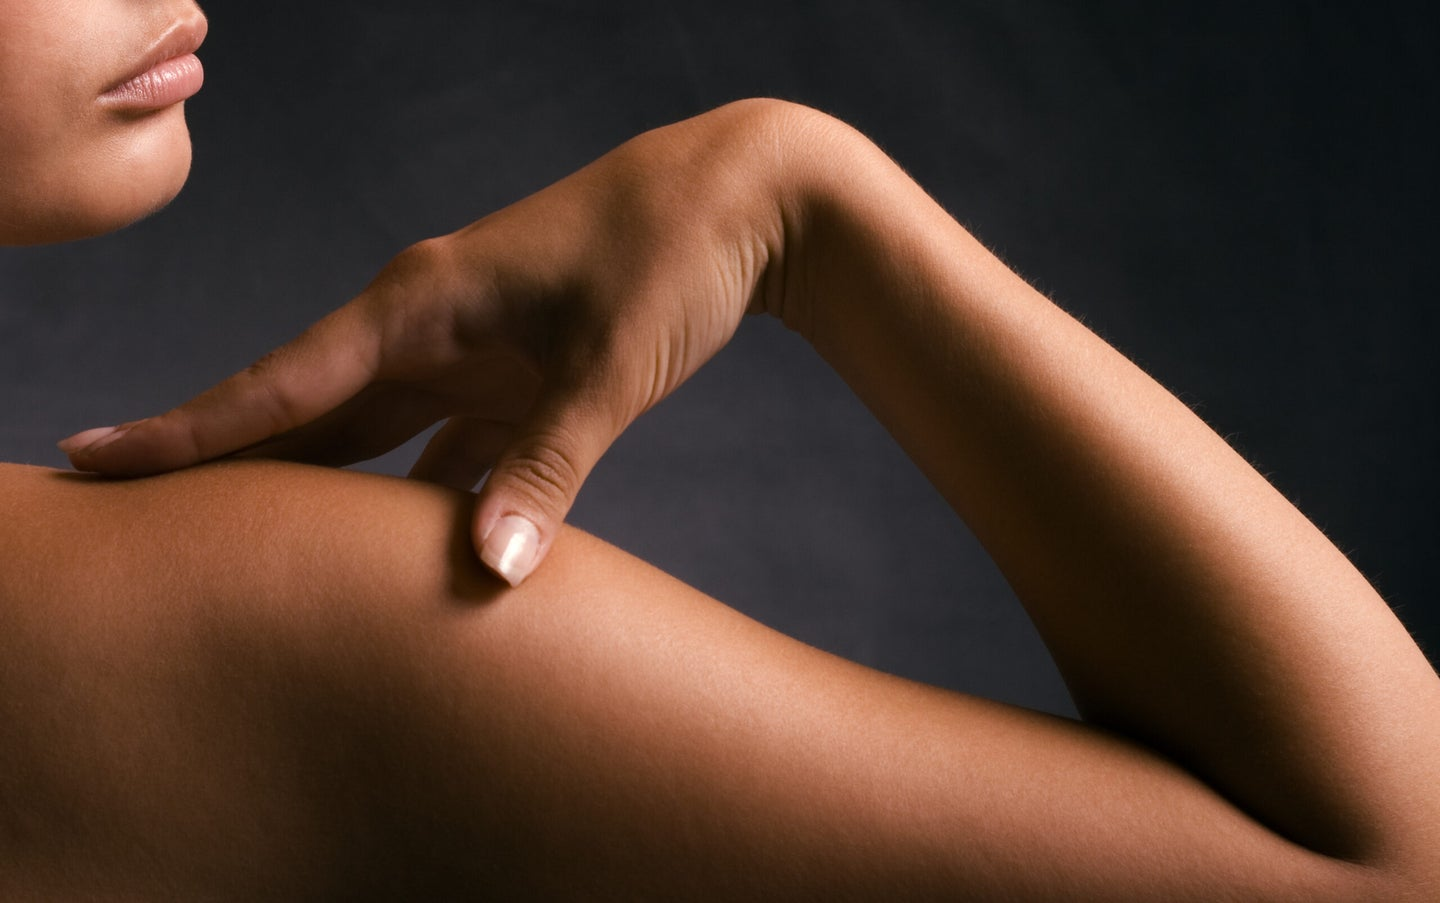 Your skin's melanin can conduct electricity